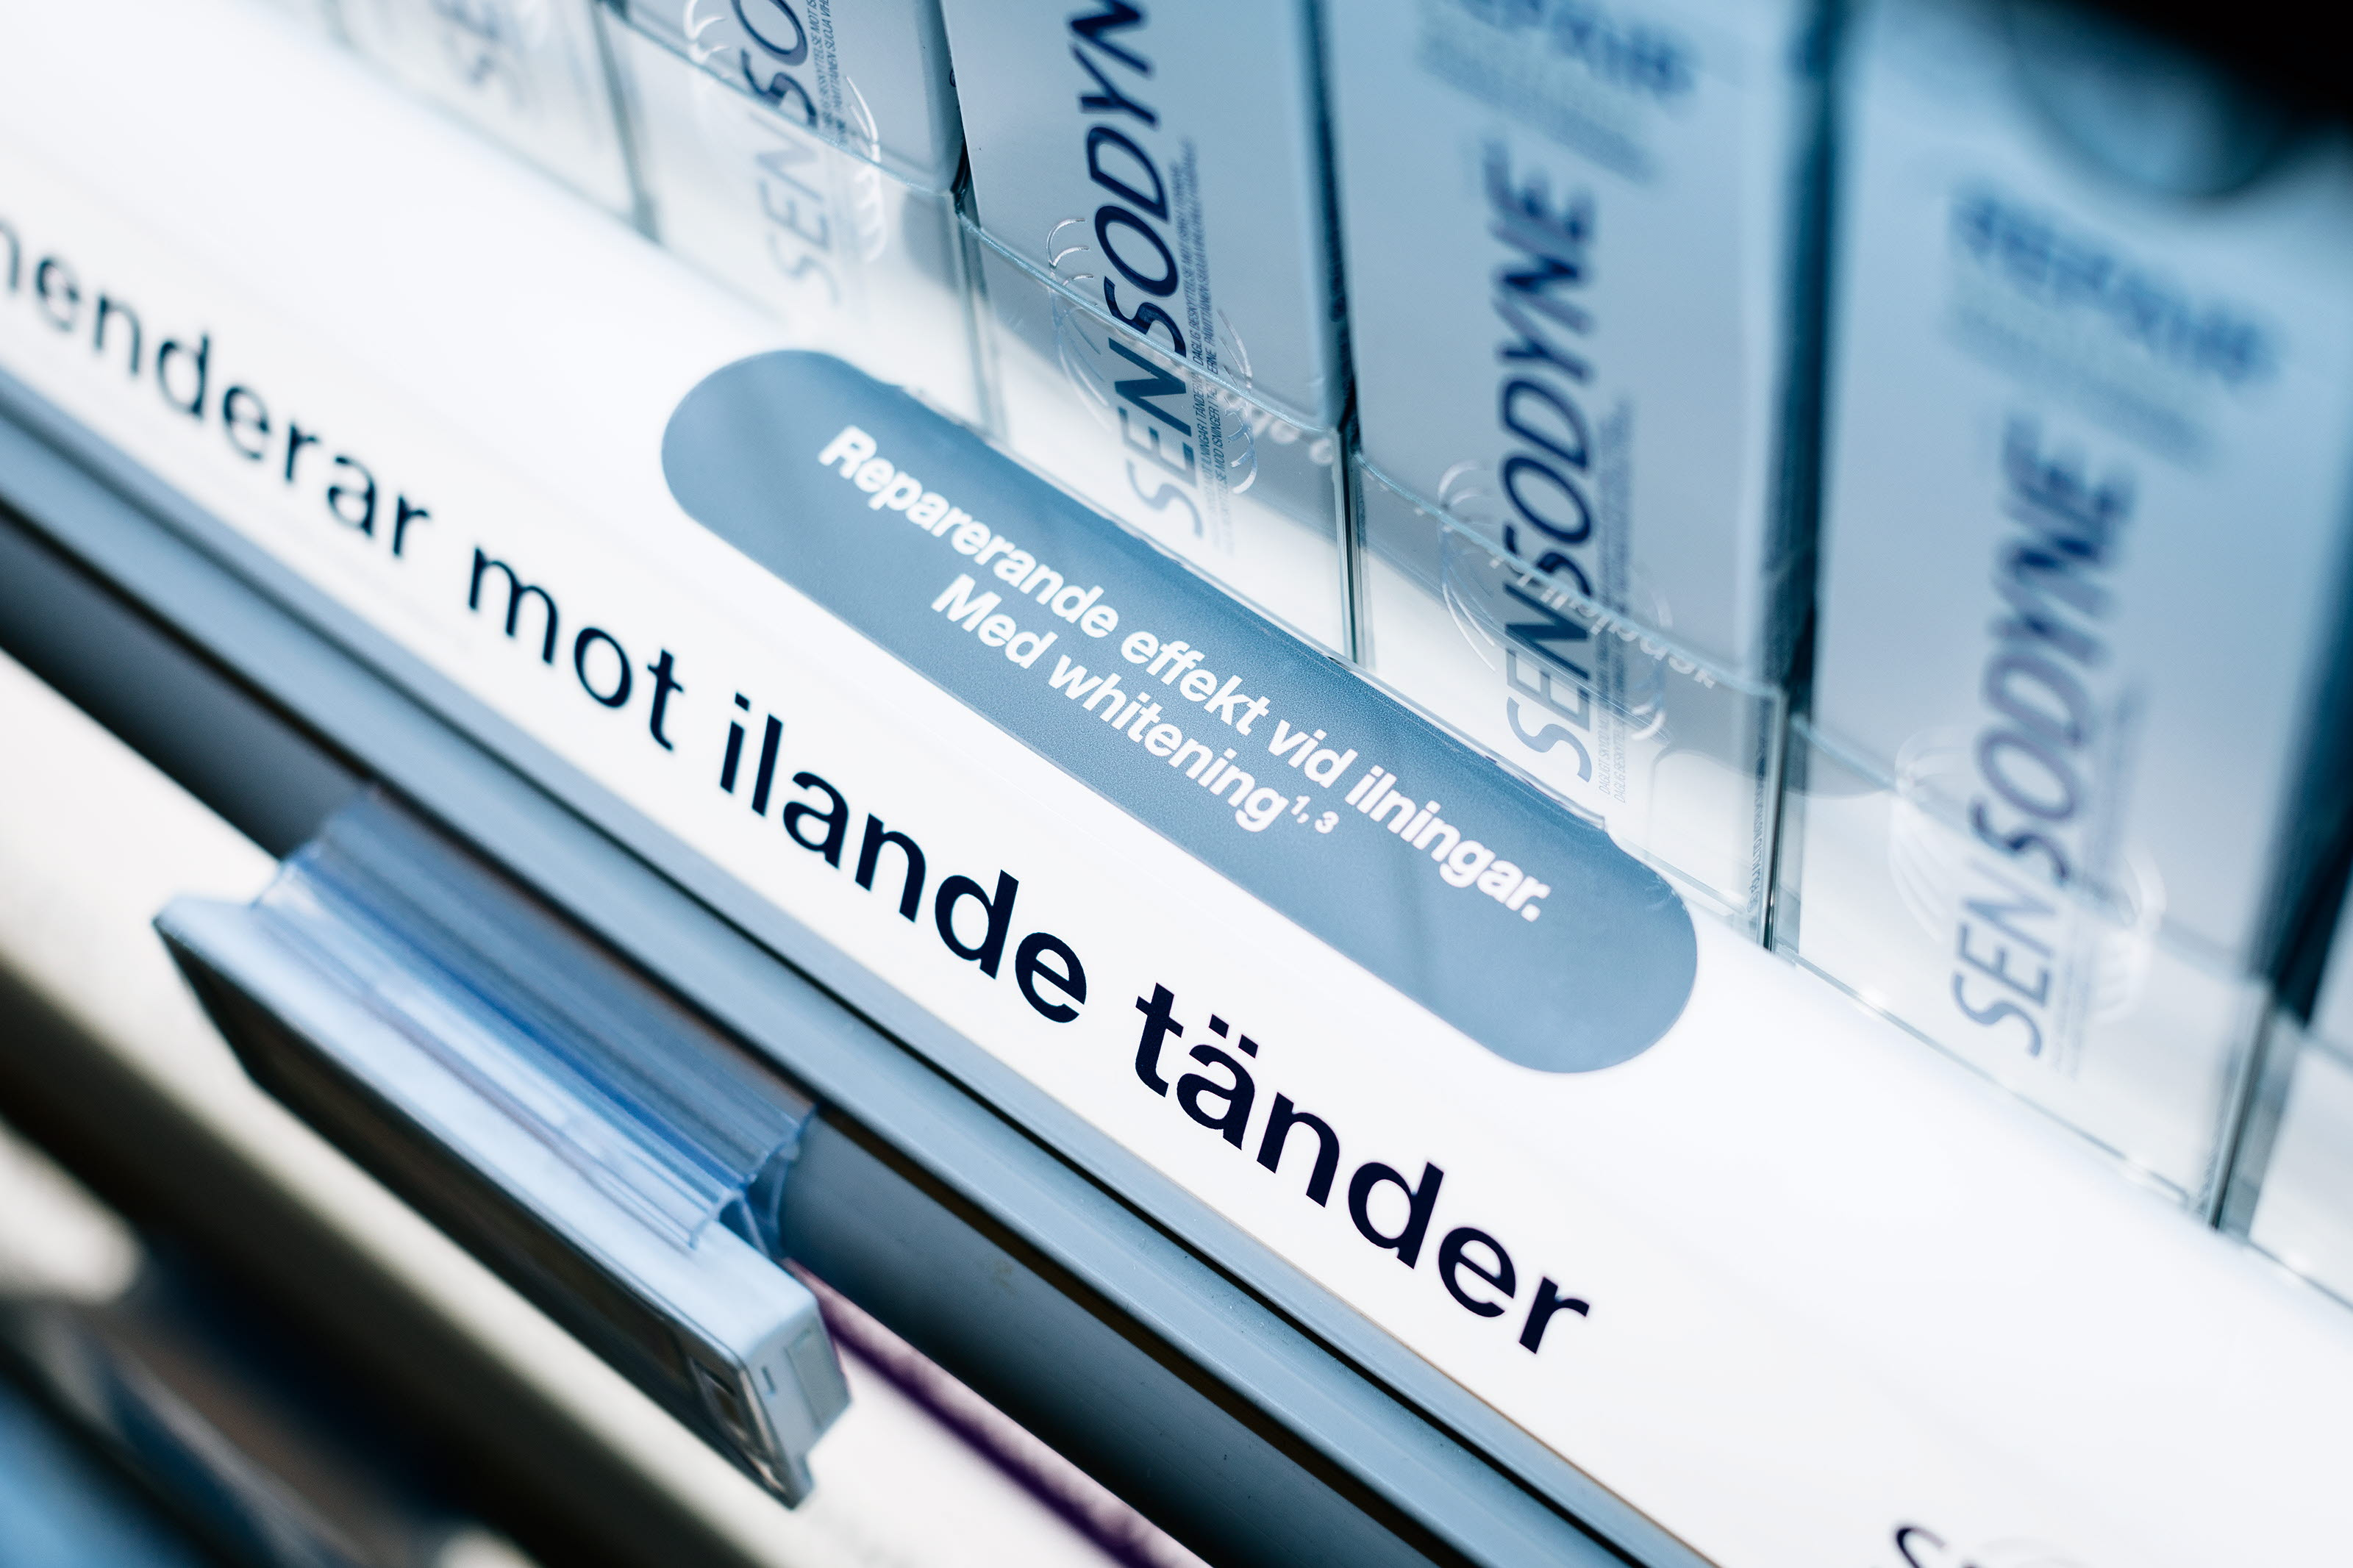 Sensodyne_AFTER_Sweden_HL-Display_2019_002.jpg